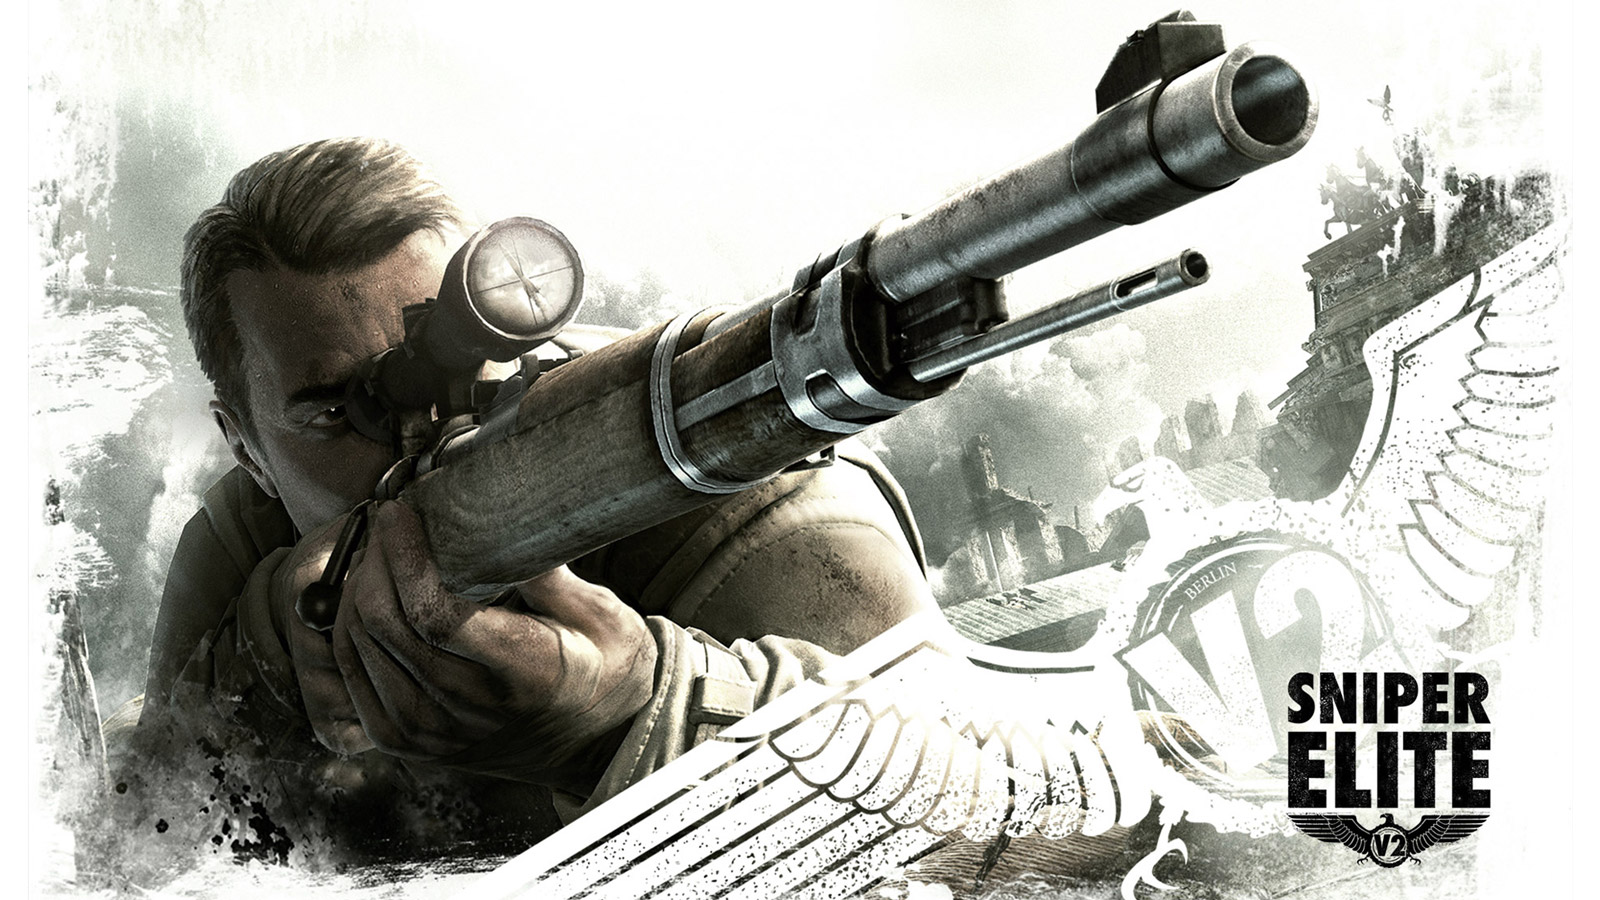 Free Sniper Elite V2 Wallpaper in 1600x900